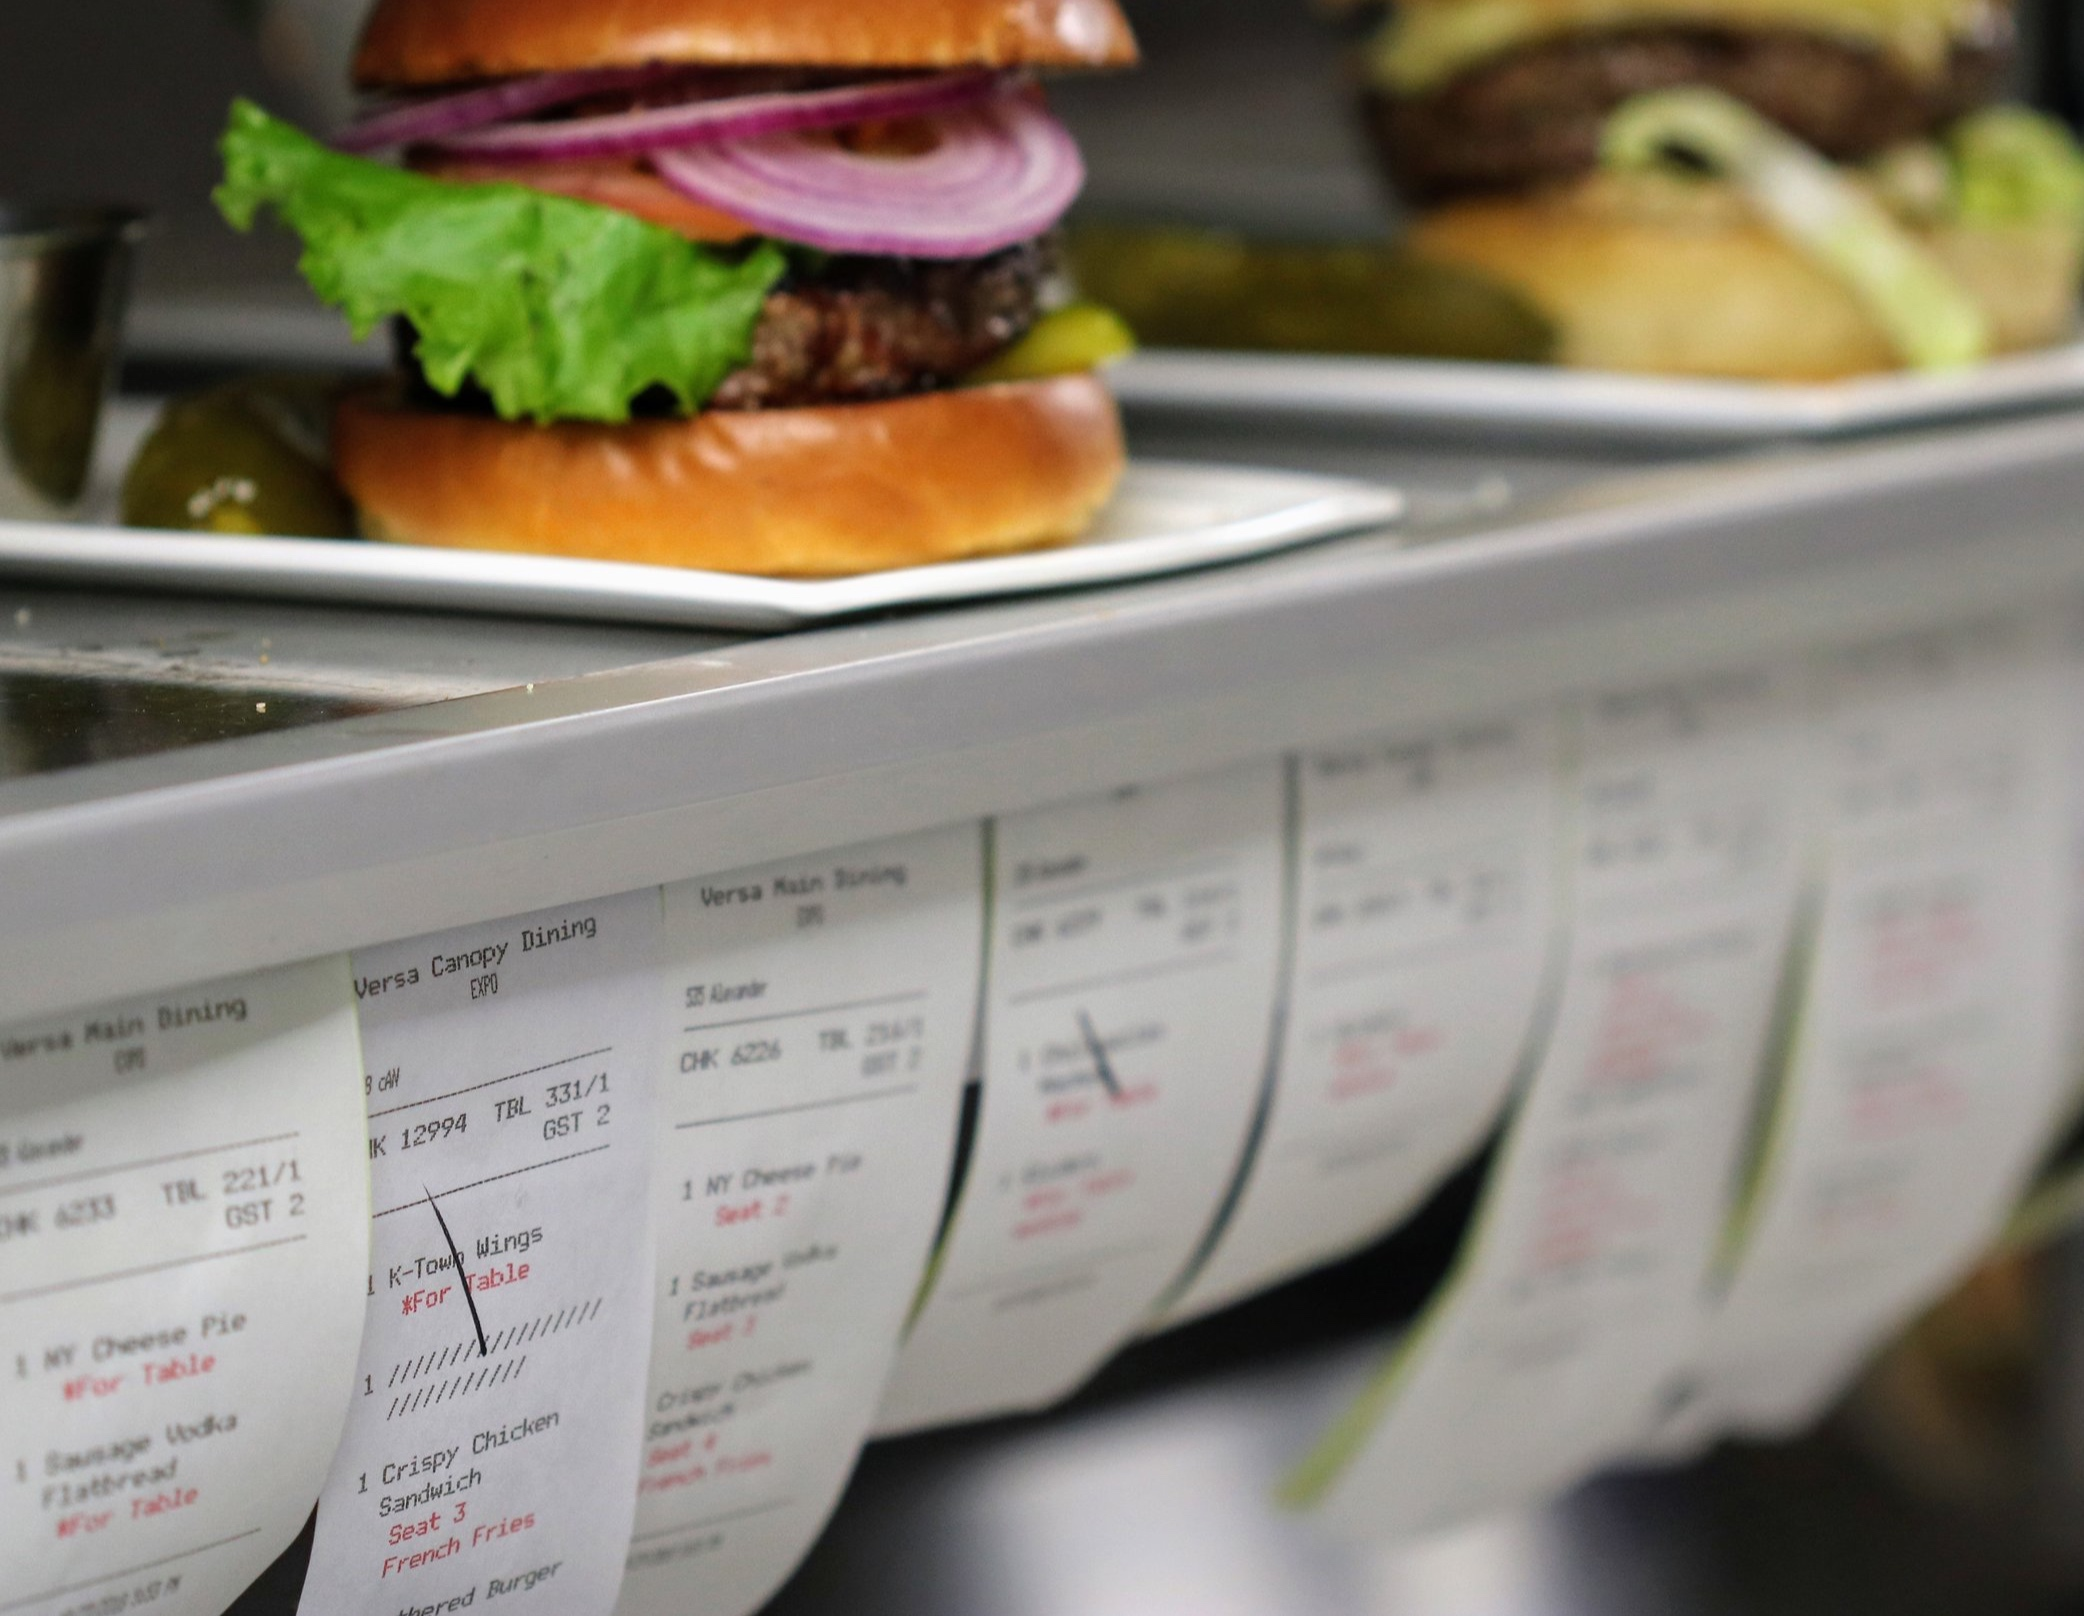 Image of kitchen with burgers on a shelf.